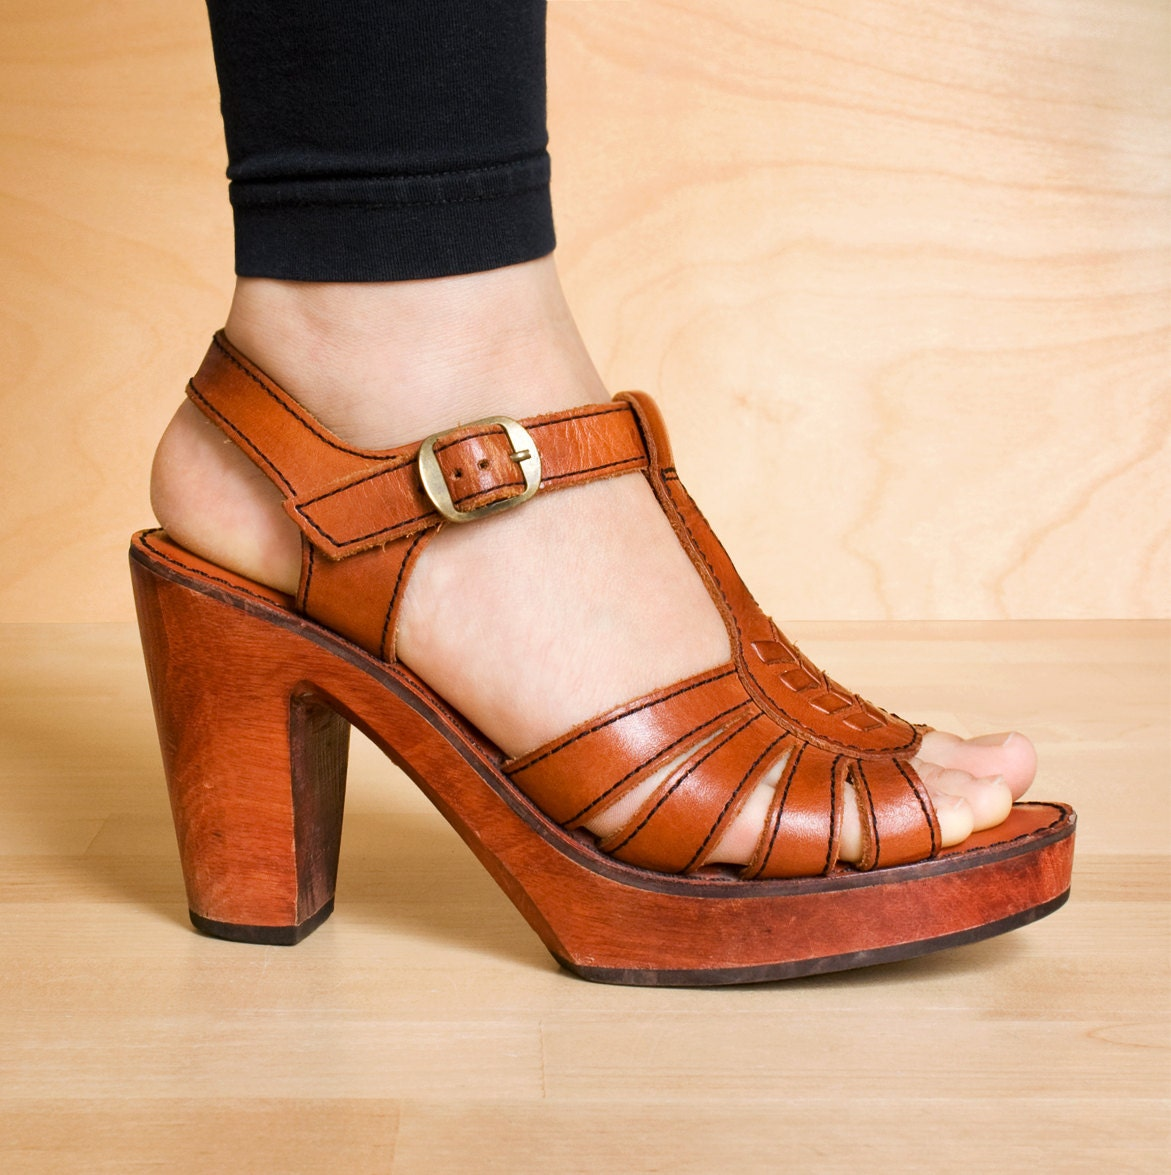 Thom mcan shoes for women :: Clothing stores